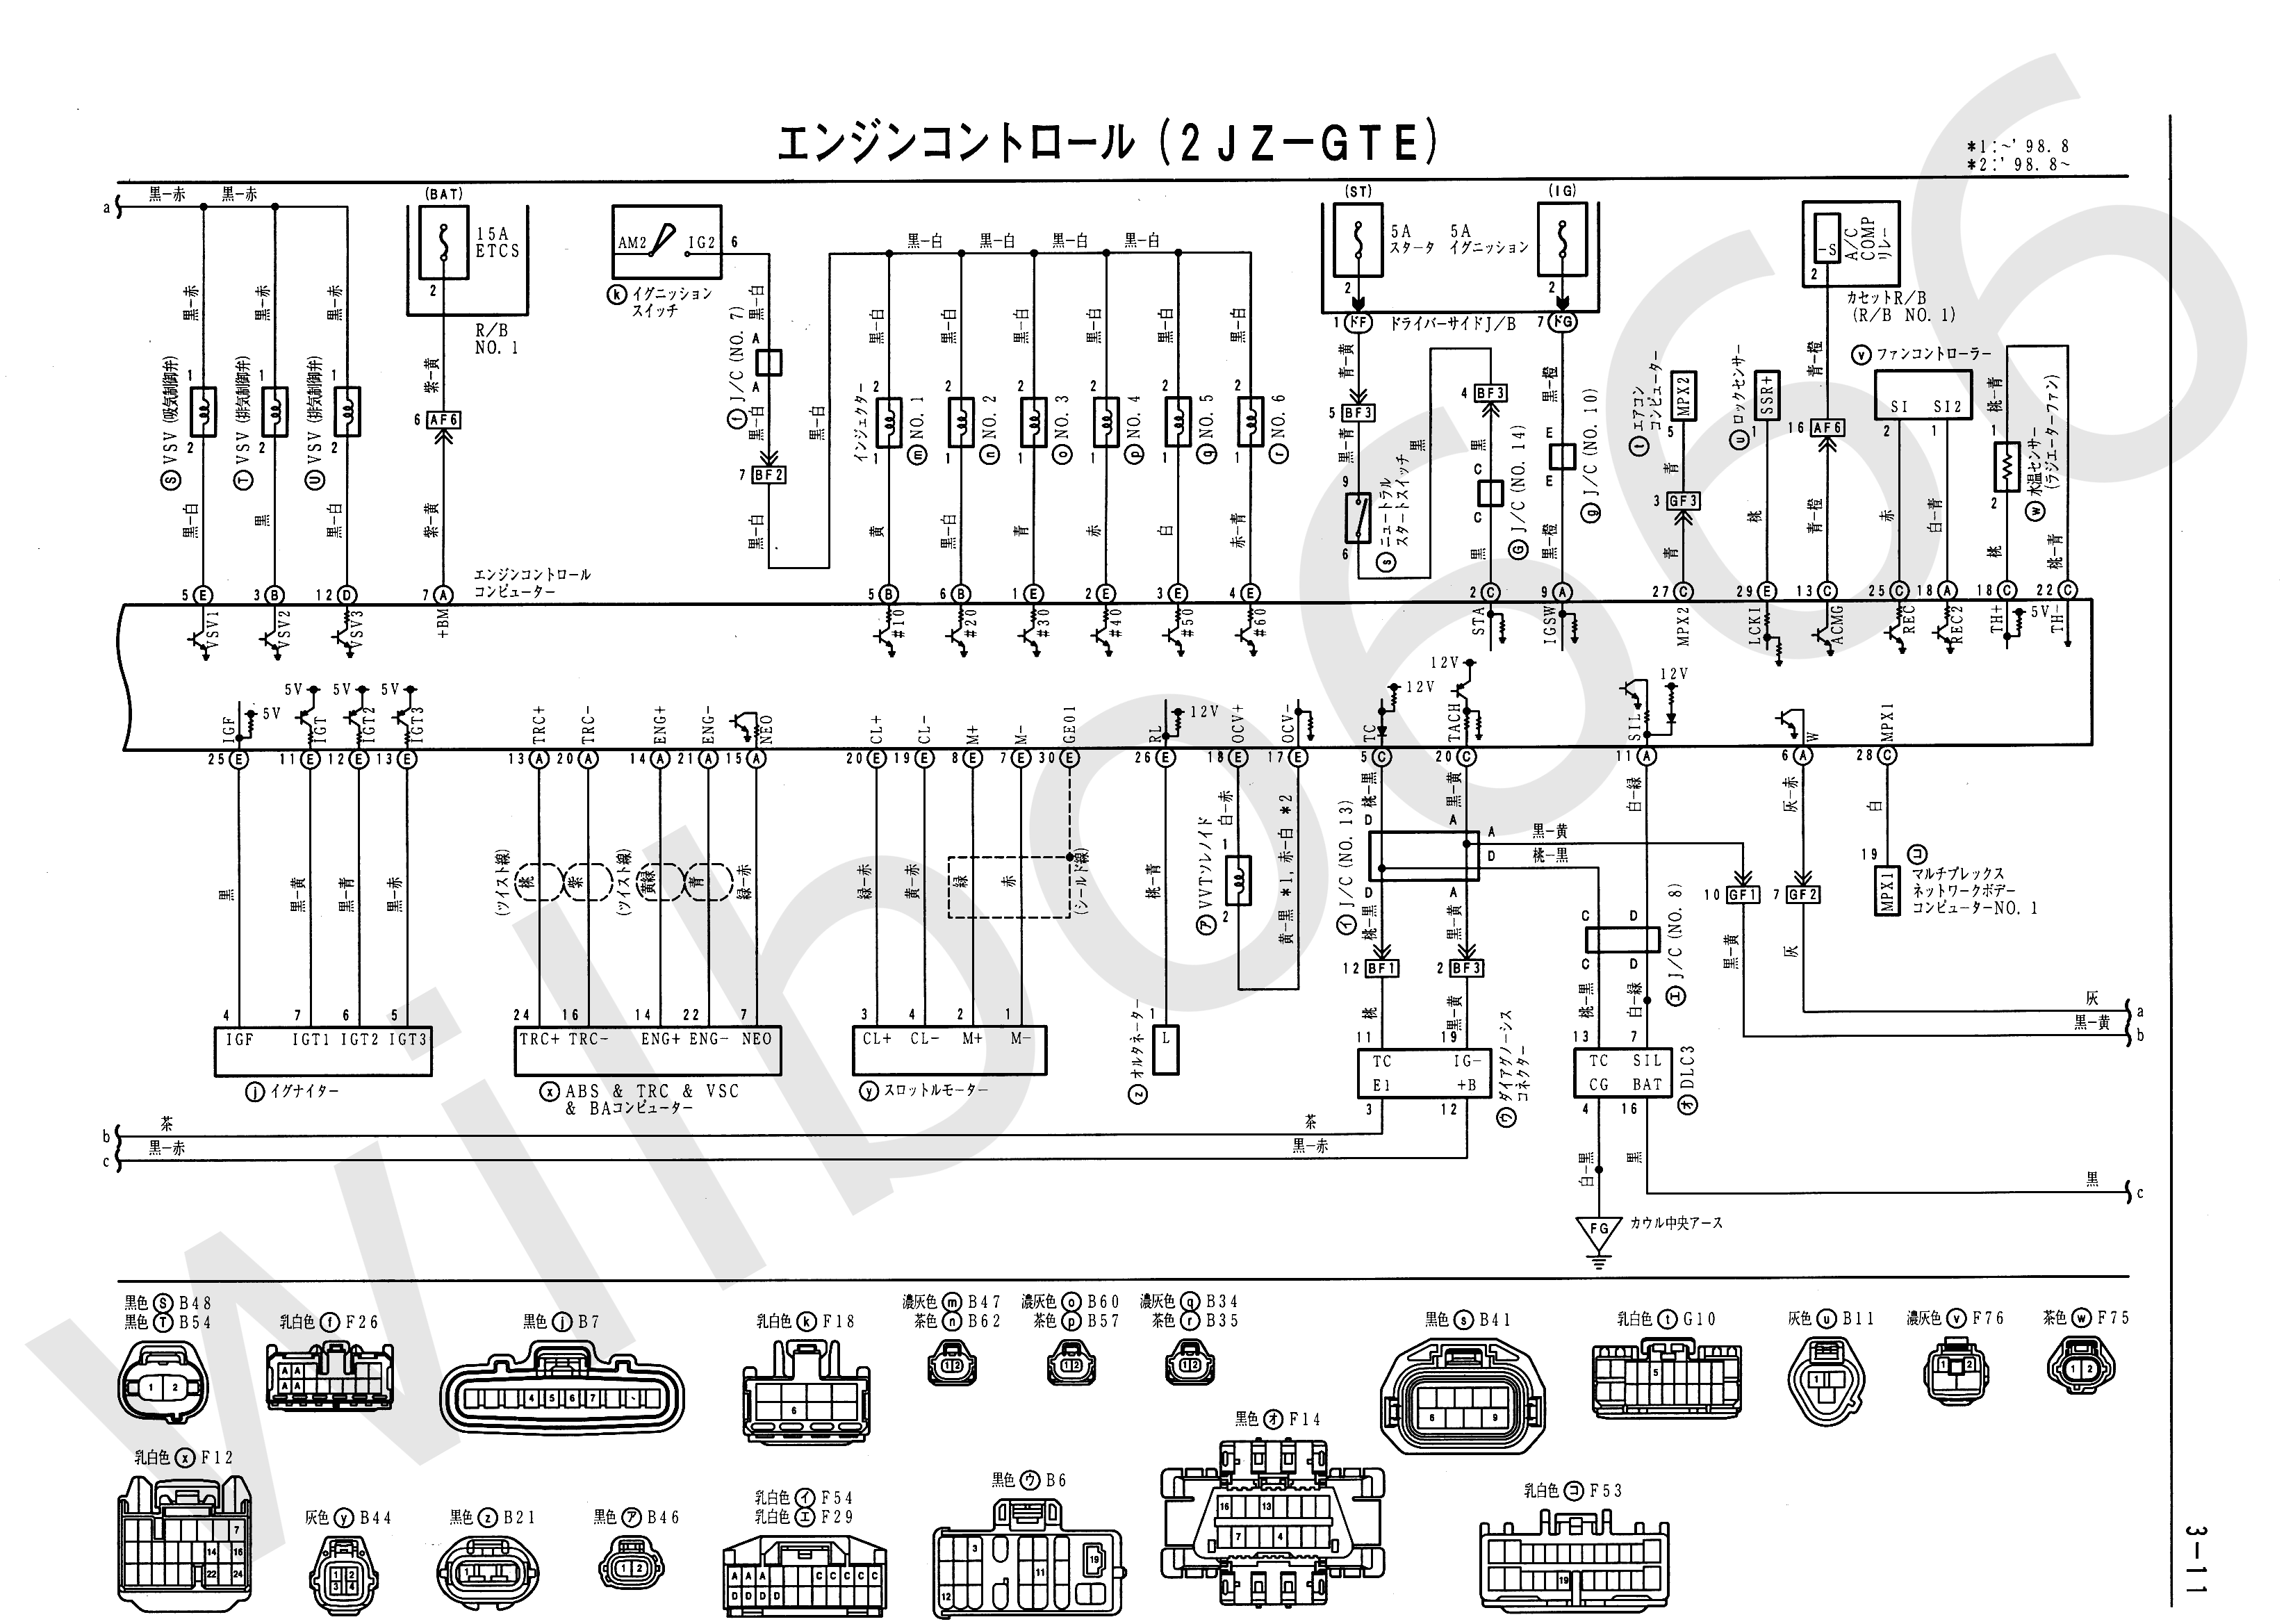 JZS161 Electrical Wiring Diagram 6748505 3 11 toyota vvti wiring diagram toyota wiring diagrams instruction jzx100 wiring diagram at creativeand.co